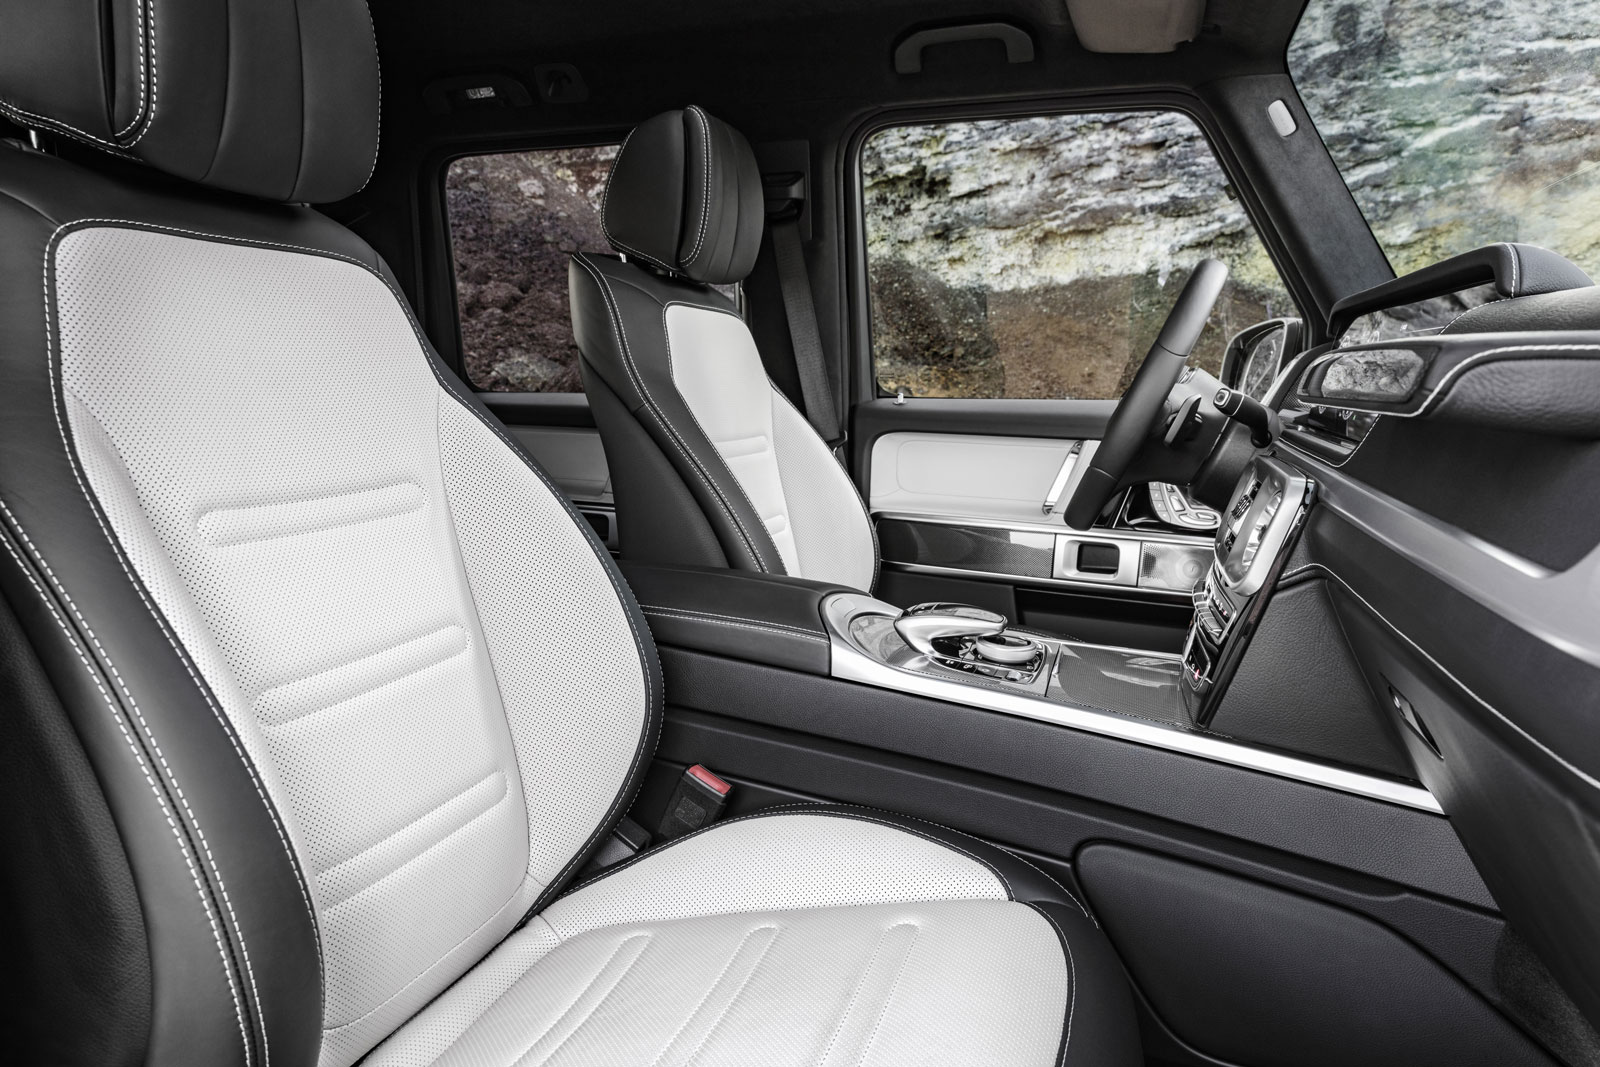 Mercedes Benz G Class Interior Revealed Ahead Of January Launch Autocar